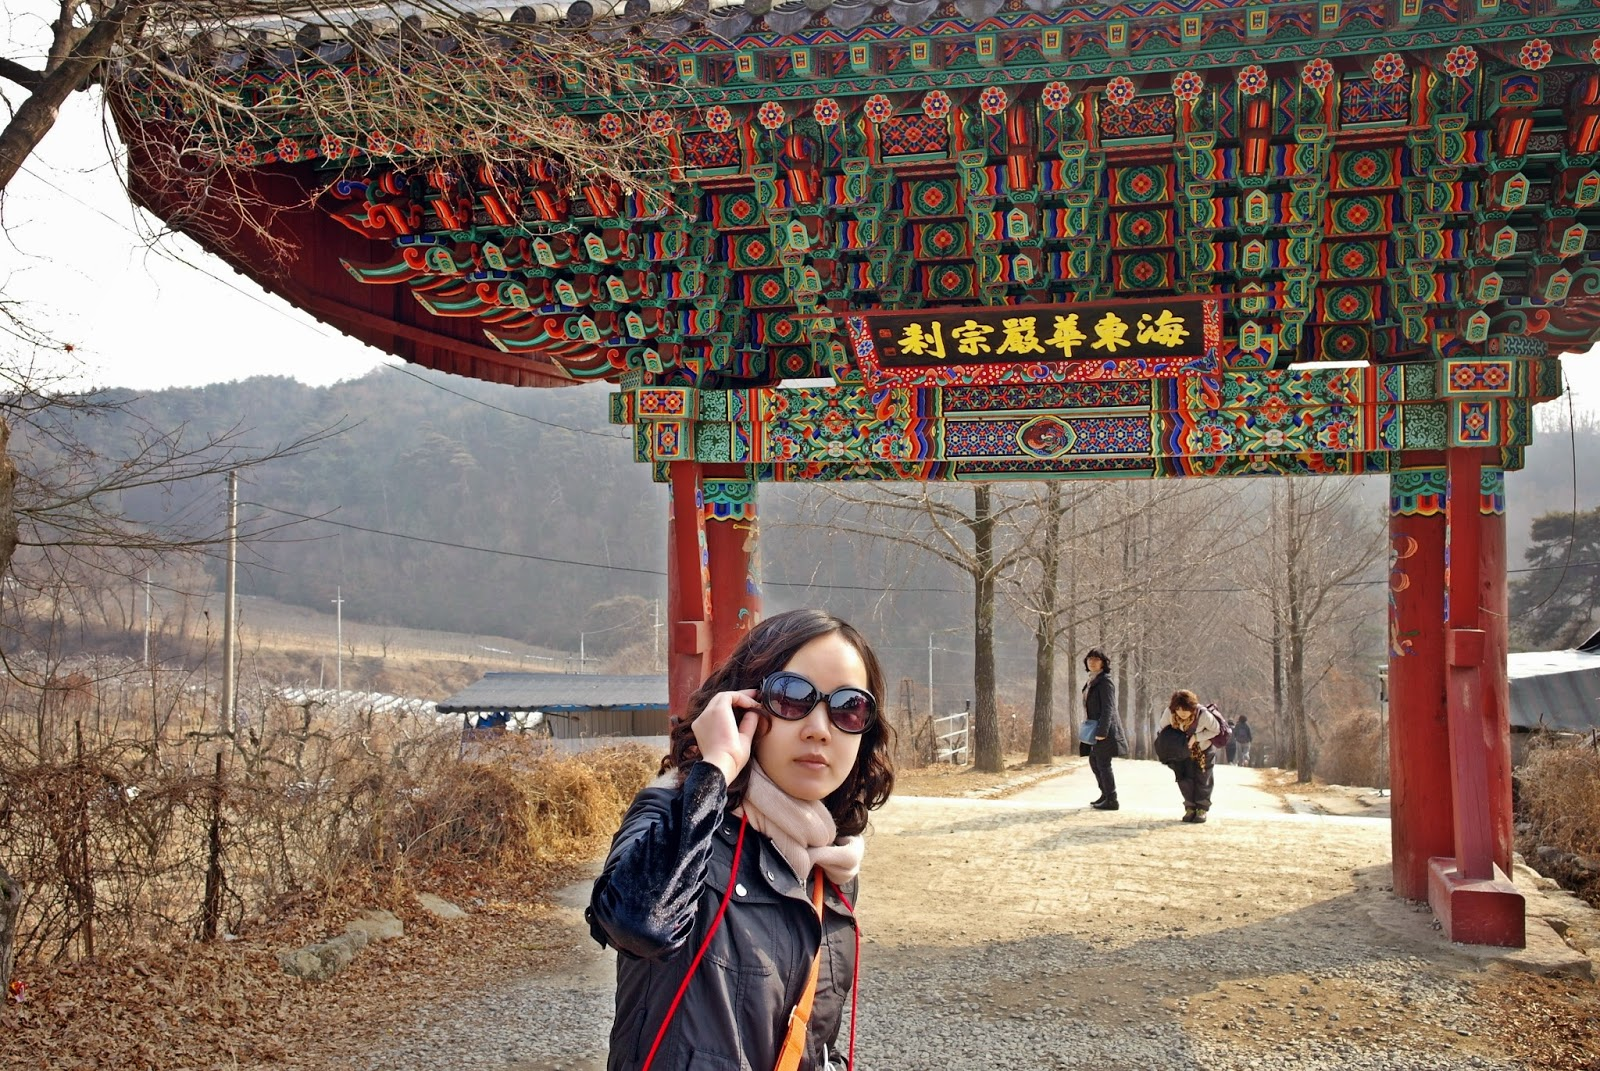 Korean Buddhist Temple | meheartseoul.blogspot.com